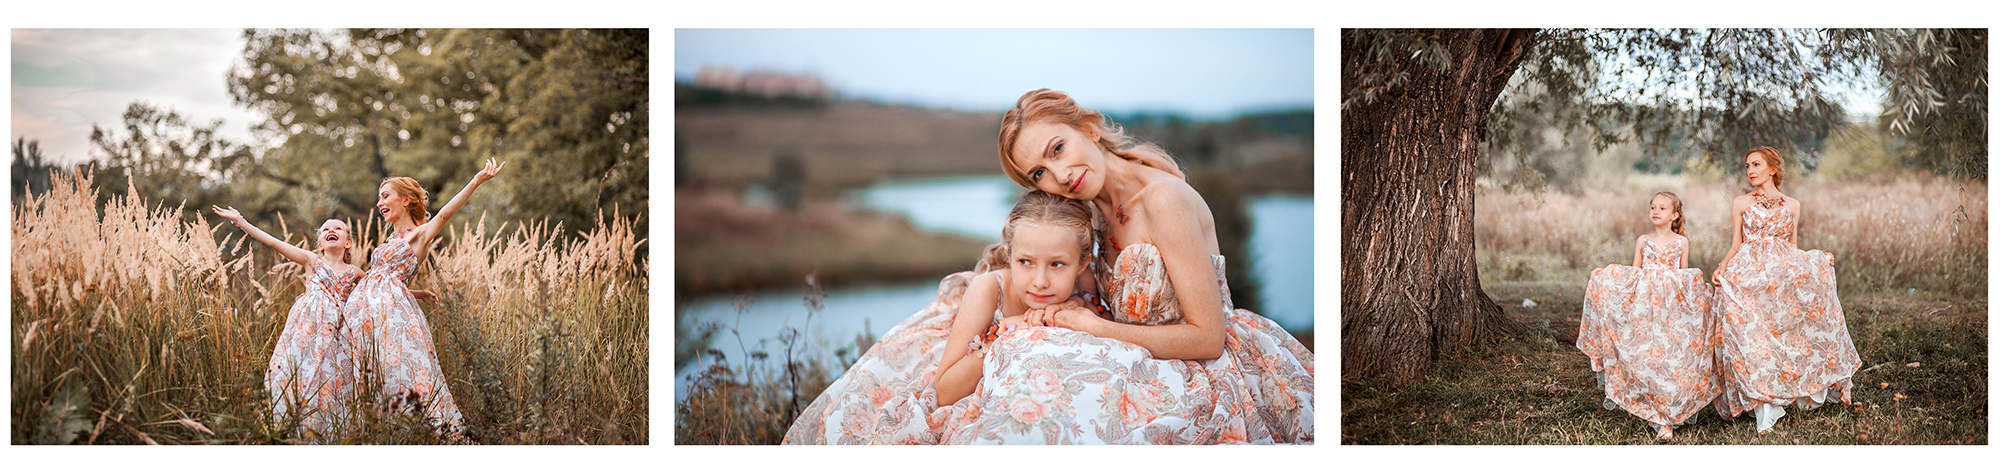 mother child daughter posing dress fields fun candid photography